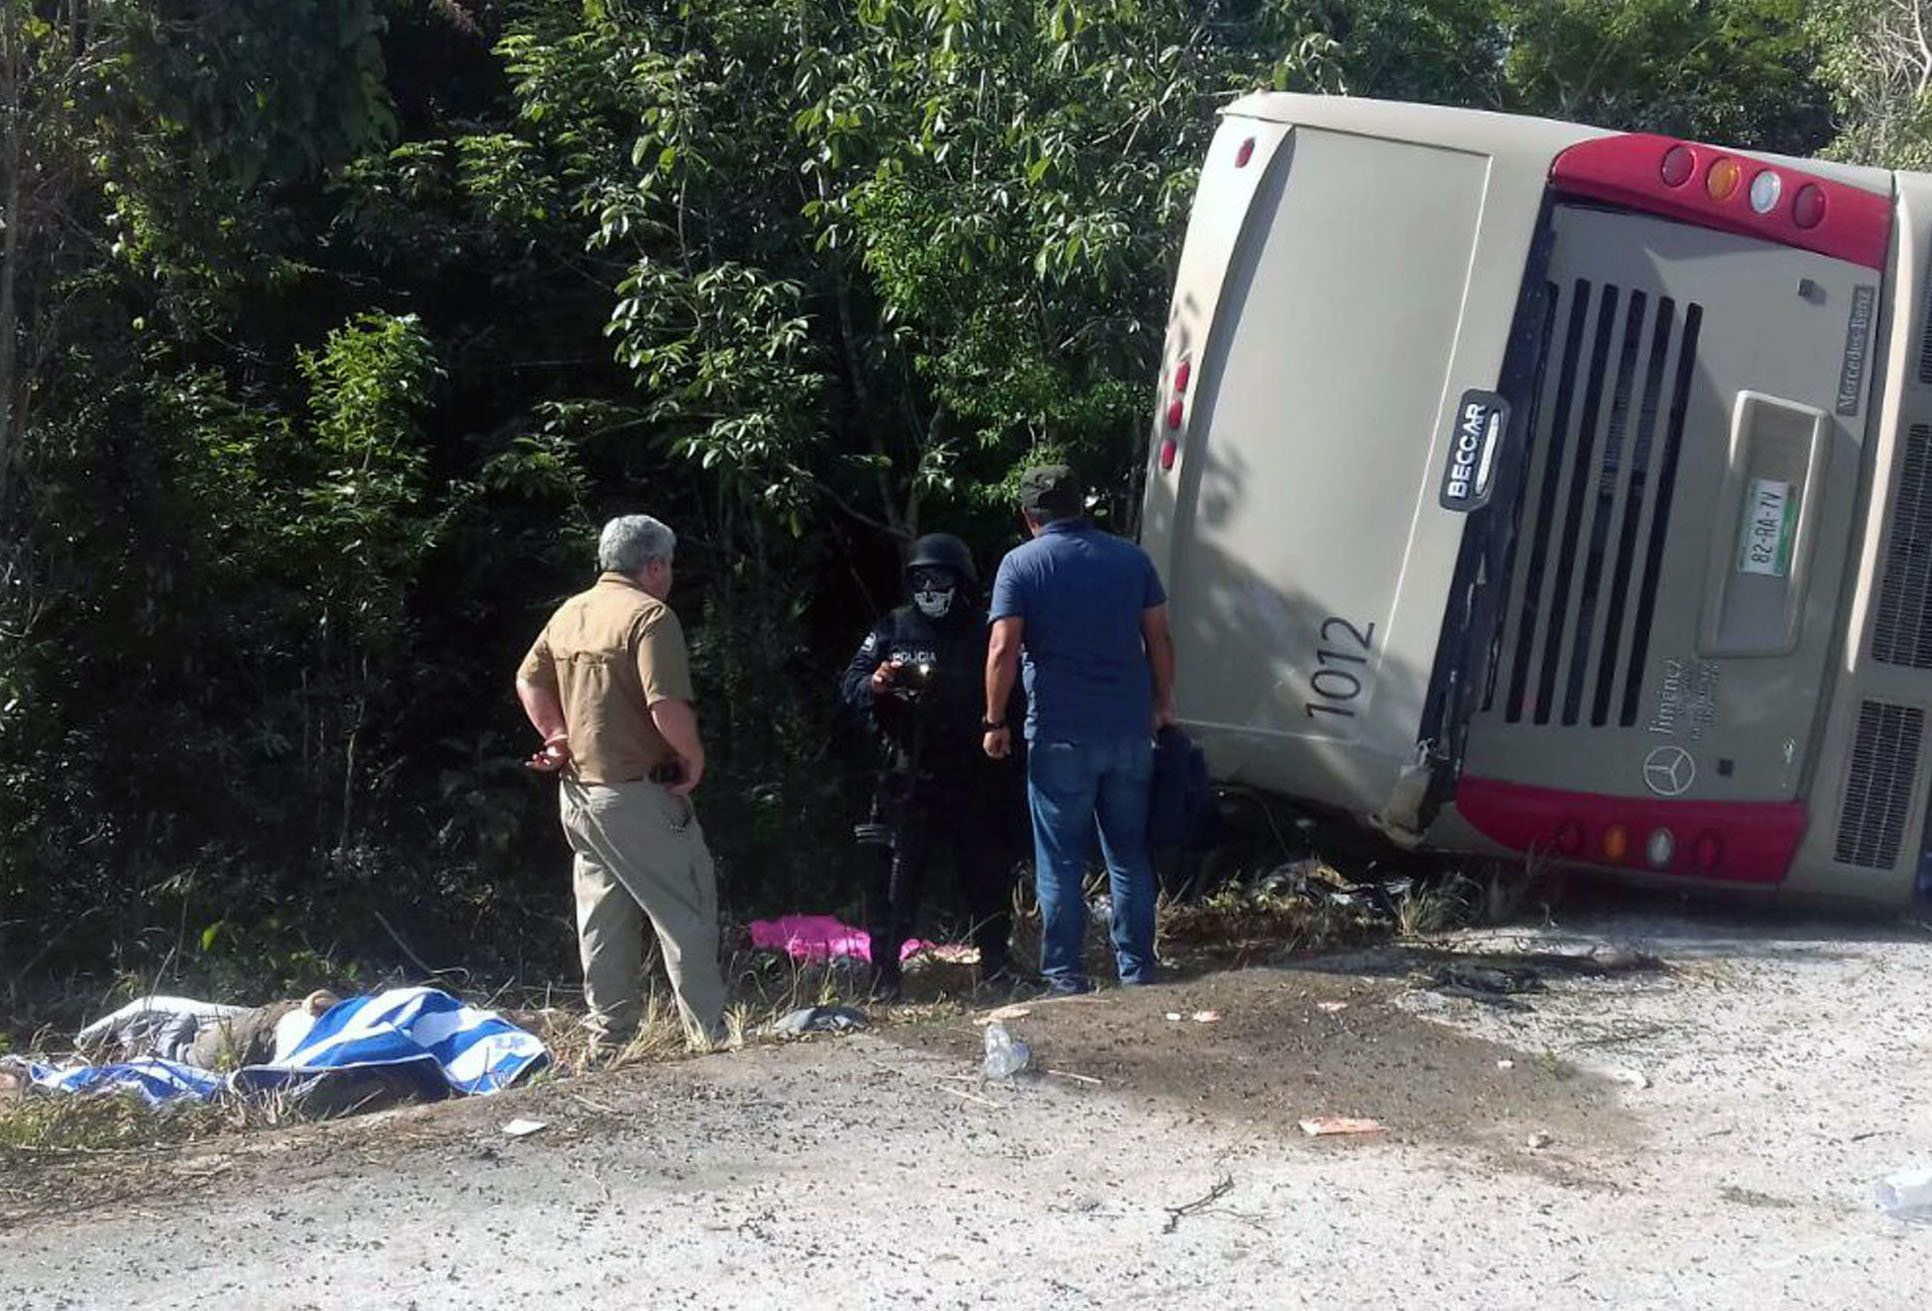 Mexican police officers and paramedics responded to the scene of the bus crash that left at least 12 people dead.